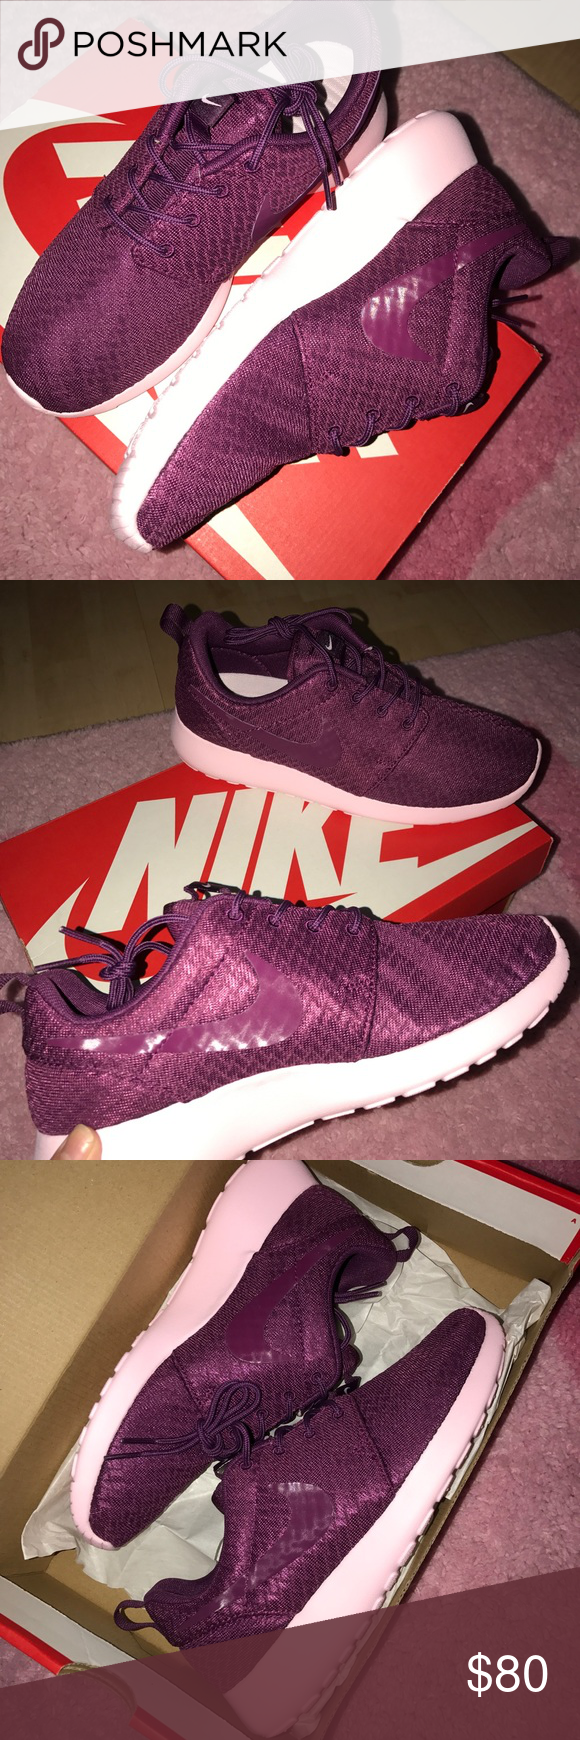 11930df046ec Limited Edition Nike Roshe One Never been worn! Limited Edition Women s Nike  Roshe One in mulberry mulberry-prism pink. Size 7.5 able to fit size 8.